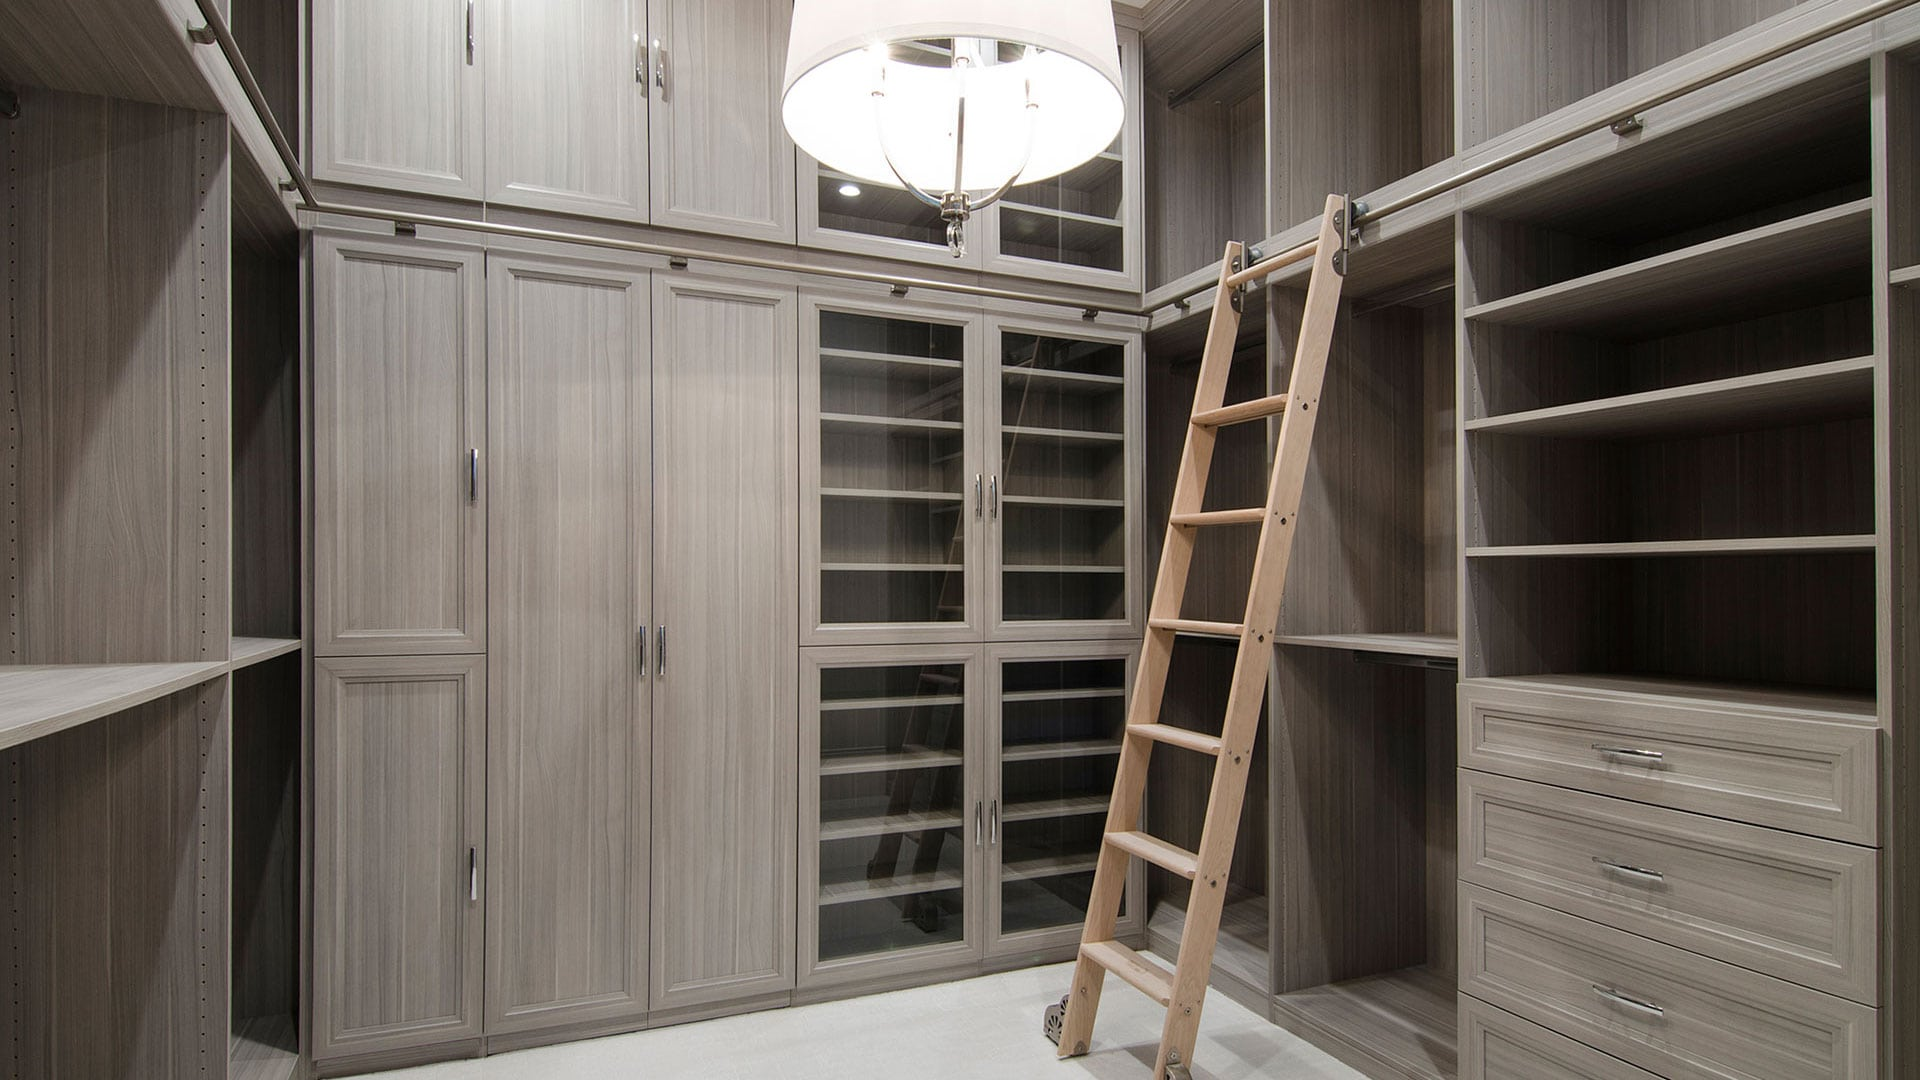 Custom closet design maximized for organization